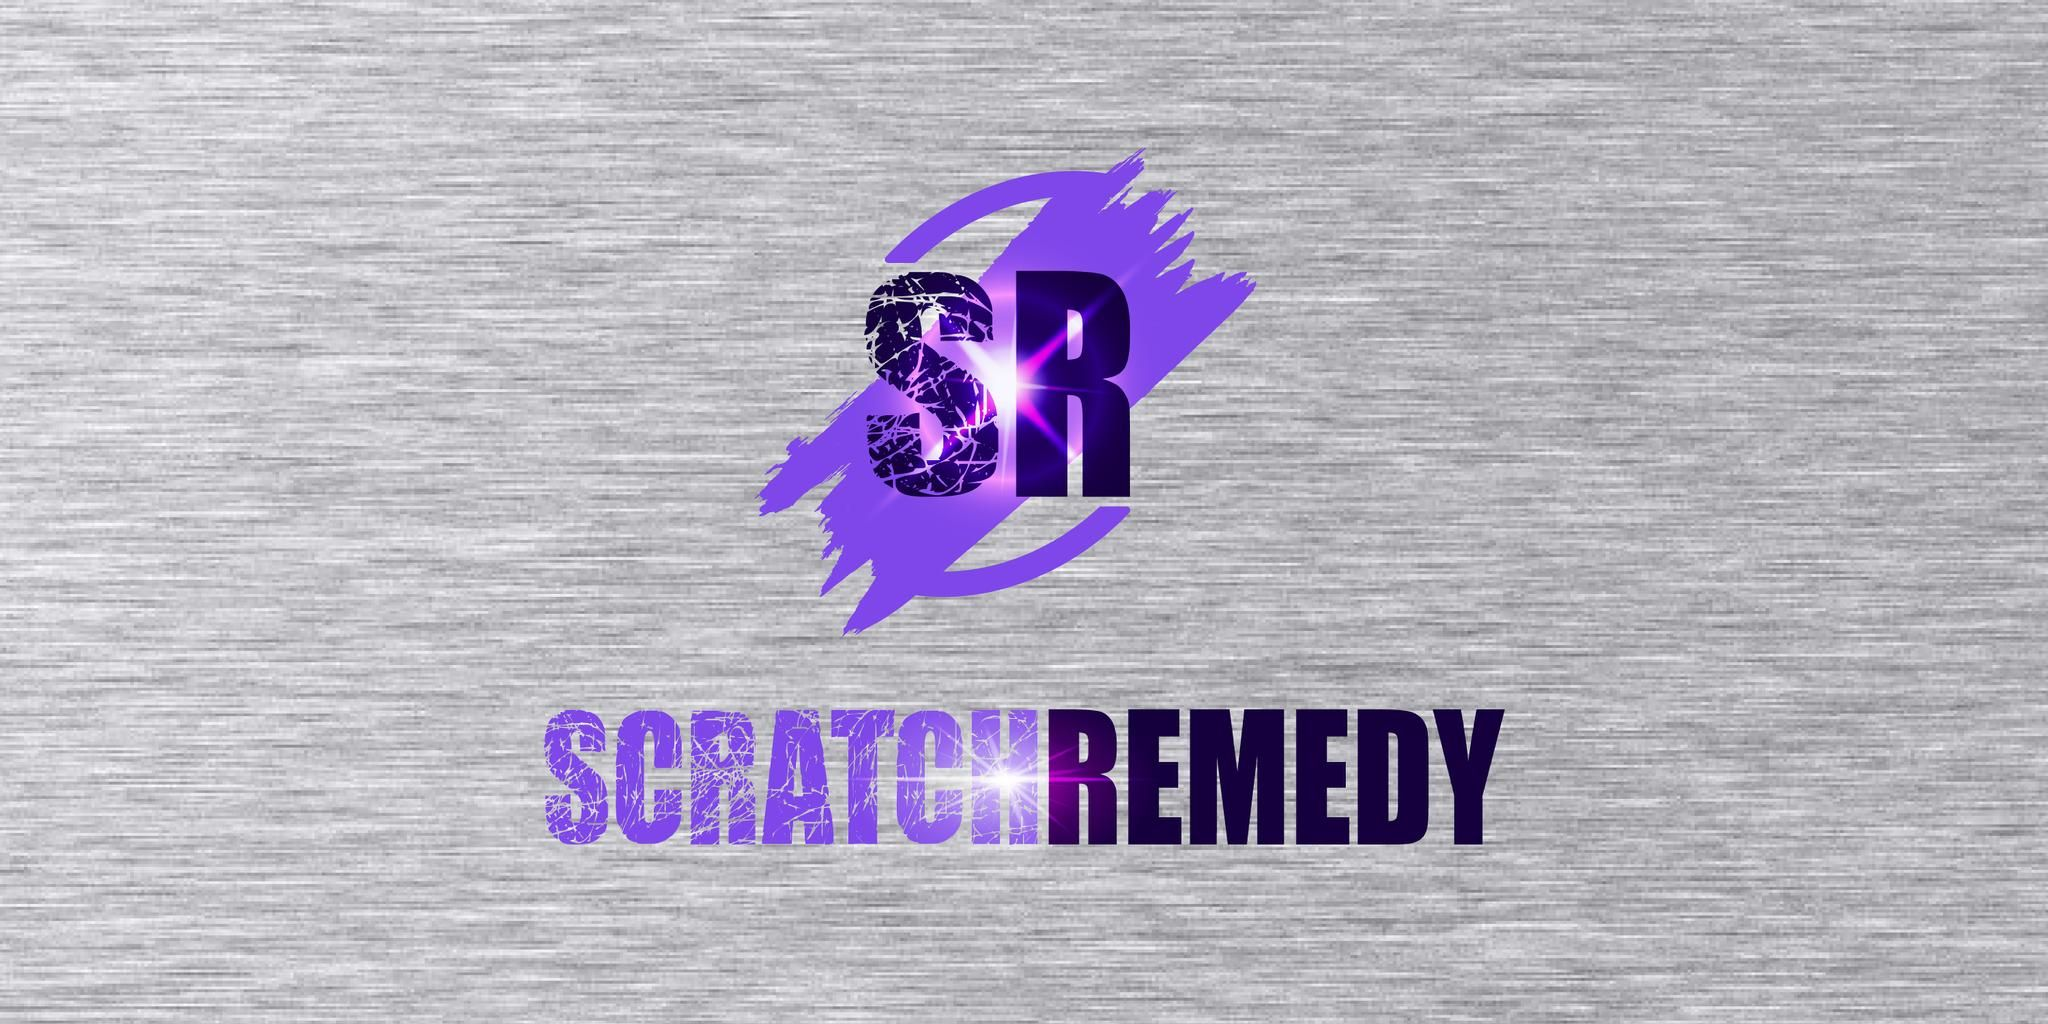 Scratch Remedy